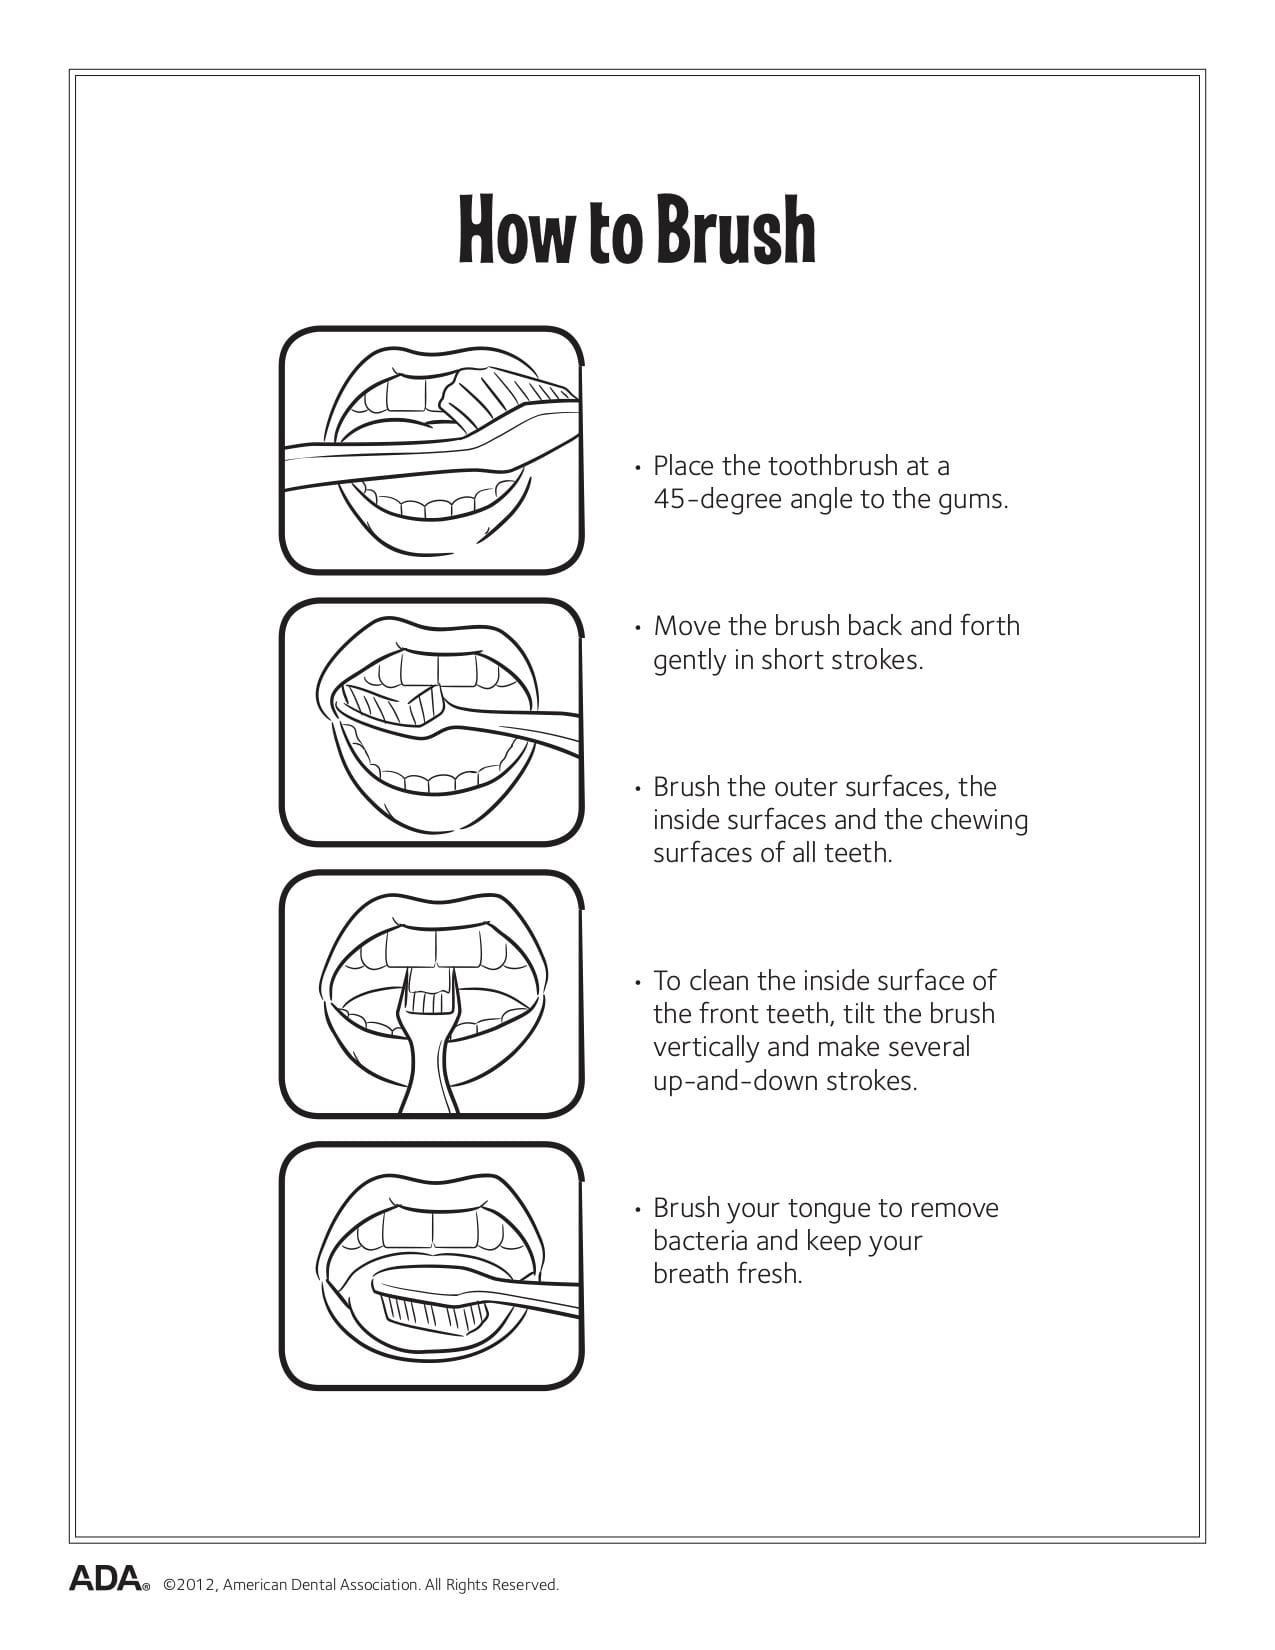 What Is The Proper Way To Brush Your Teeth